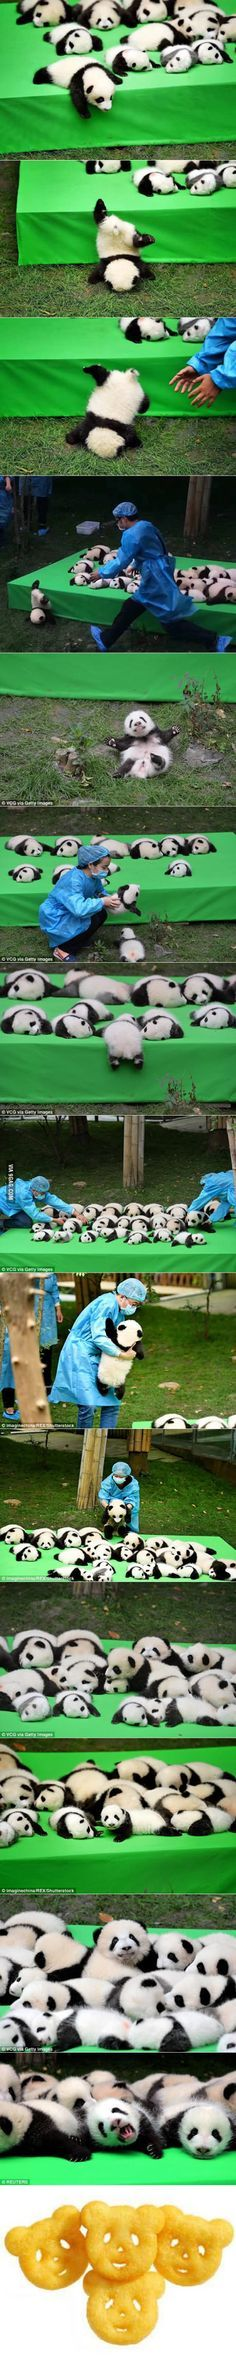 Baby Panda Face-plants And Tumbles On Its First Debut In China CUTE!!!!